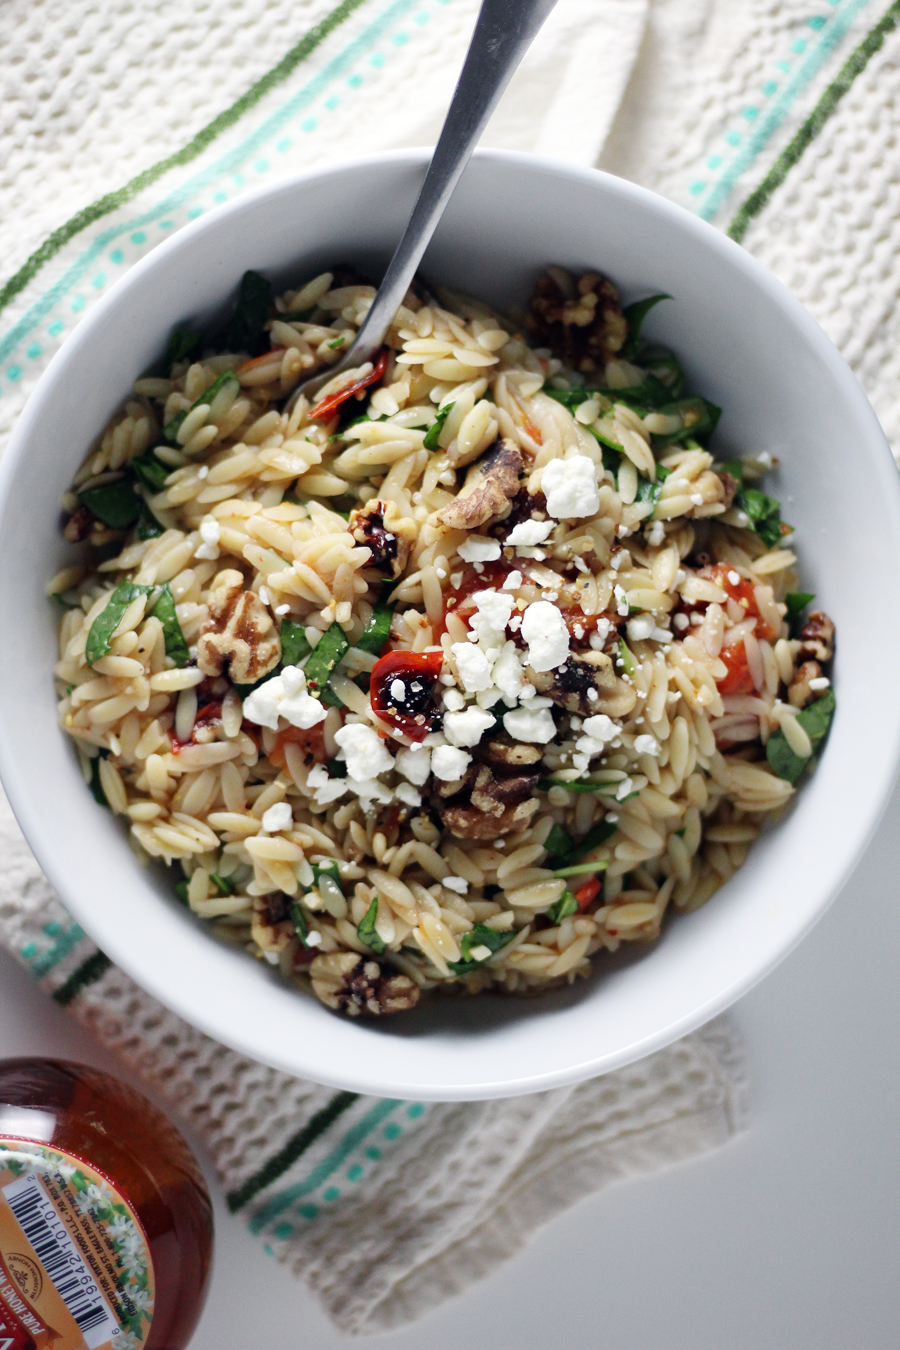 Orzo pasta tossed with roasted tomatoes, herbs and walnuts.